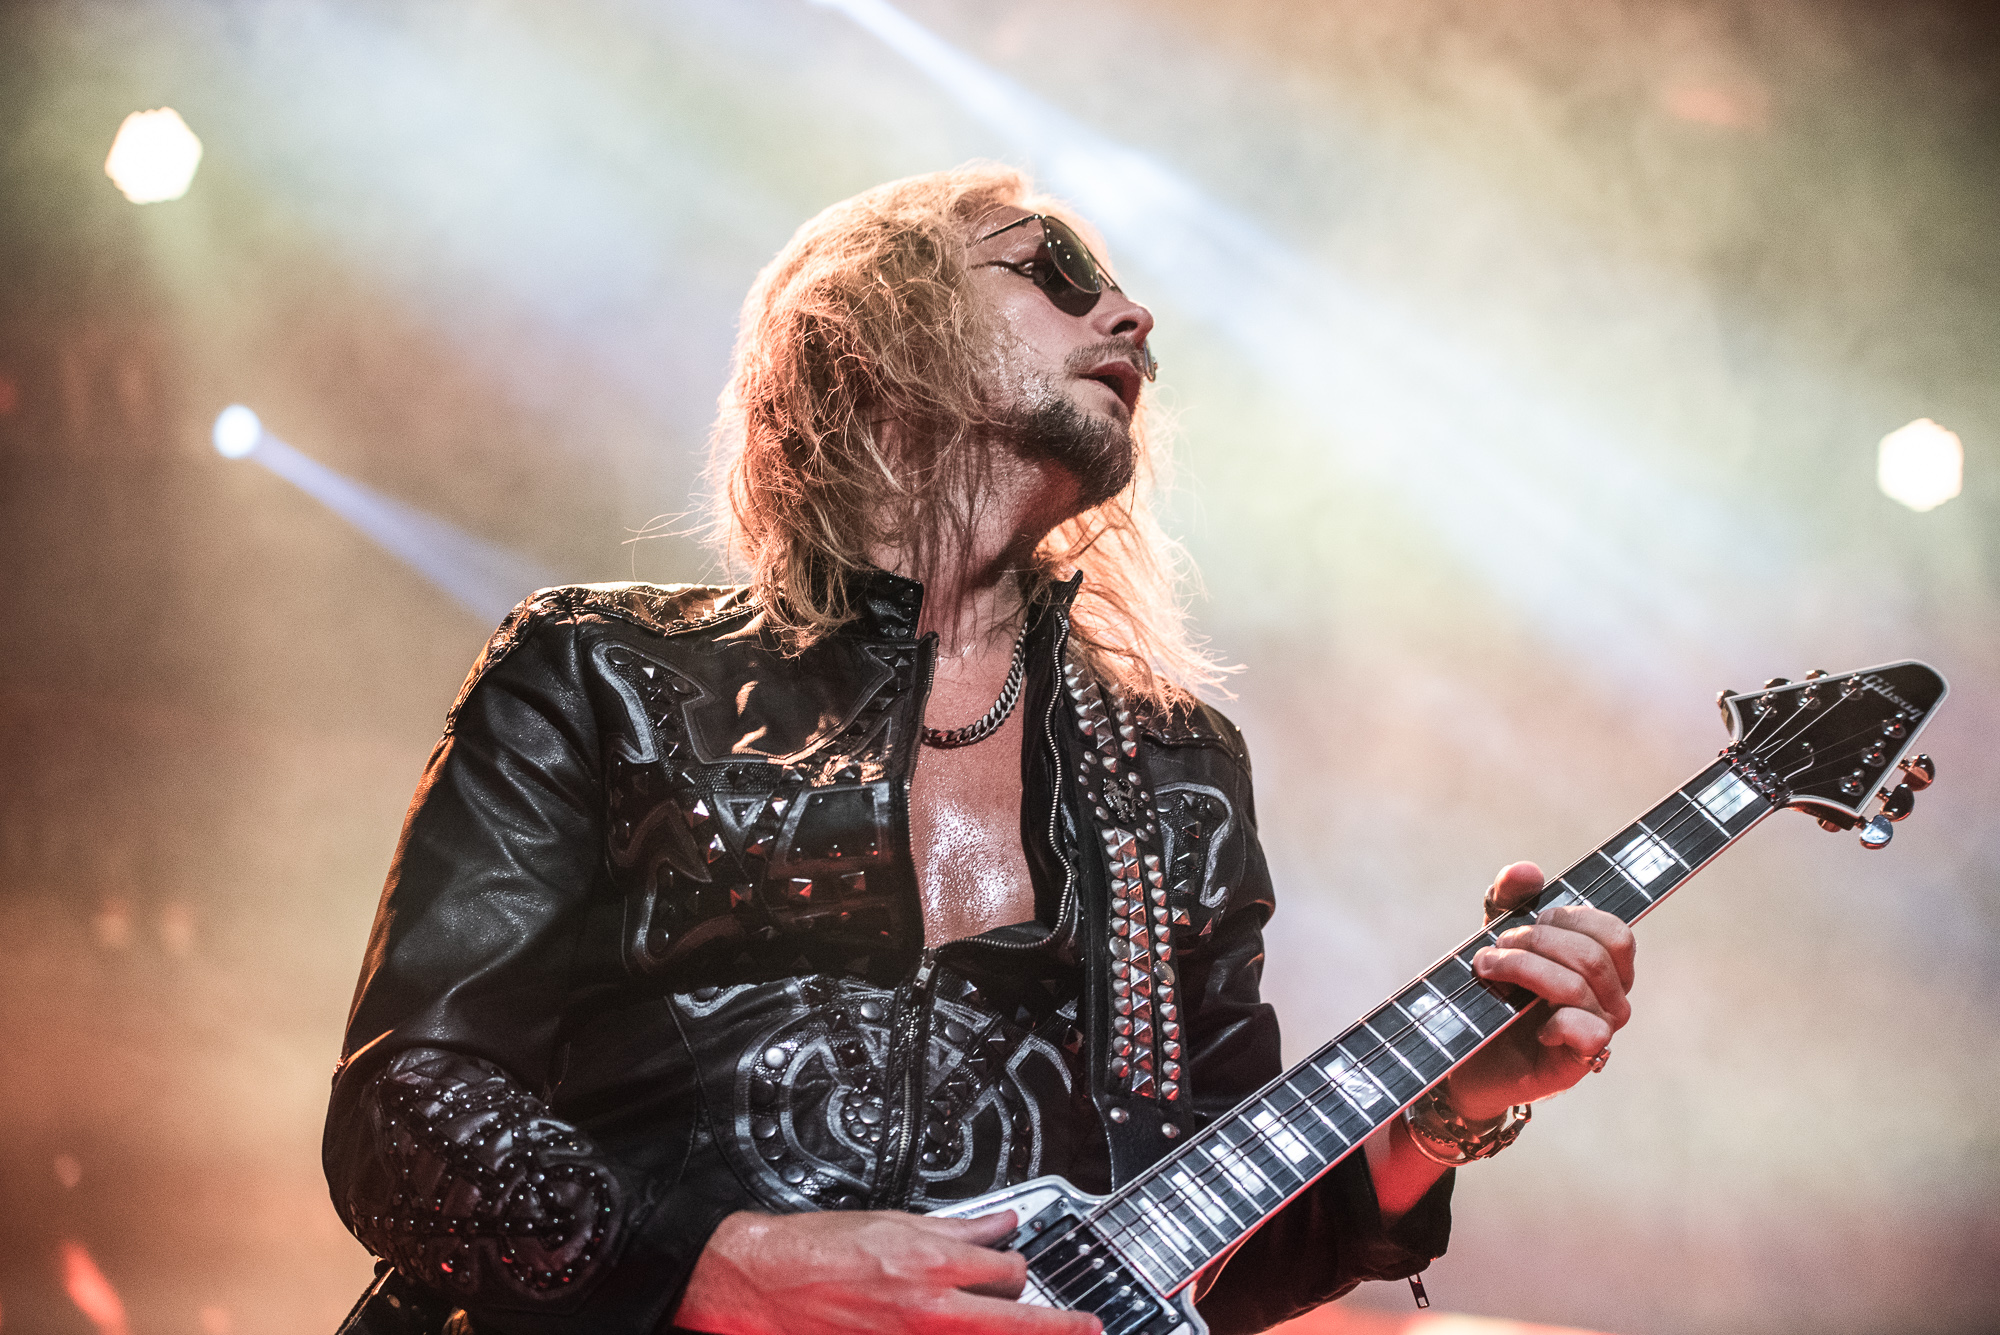 05062018_Judas_Priest@OS_DH_WillyLarsenPhotography (30 of 35)